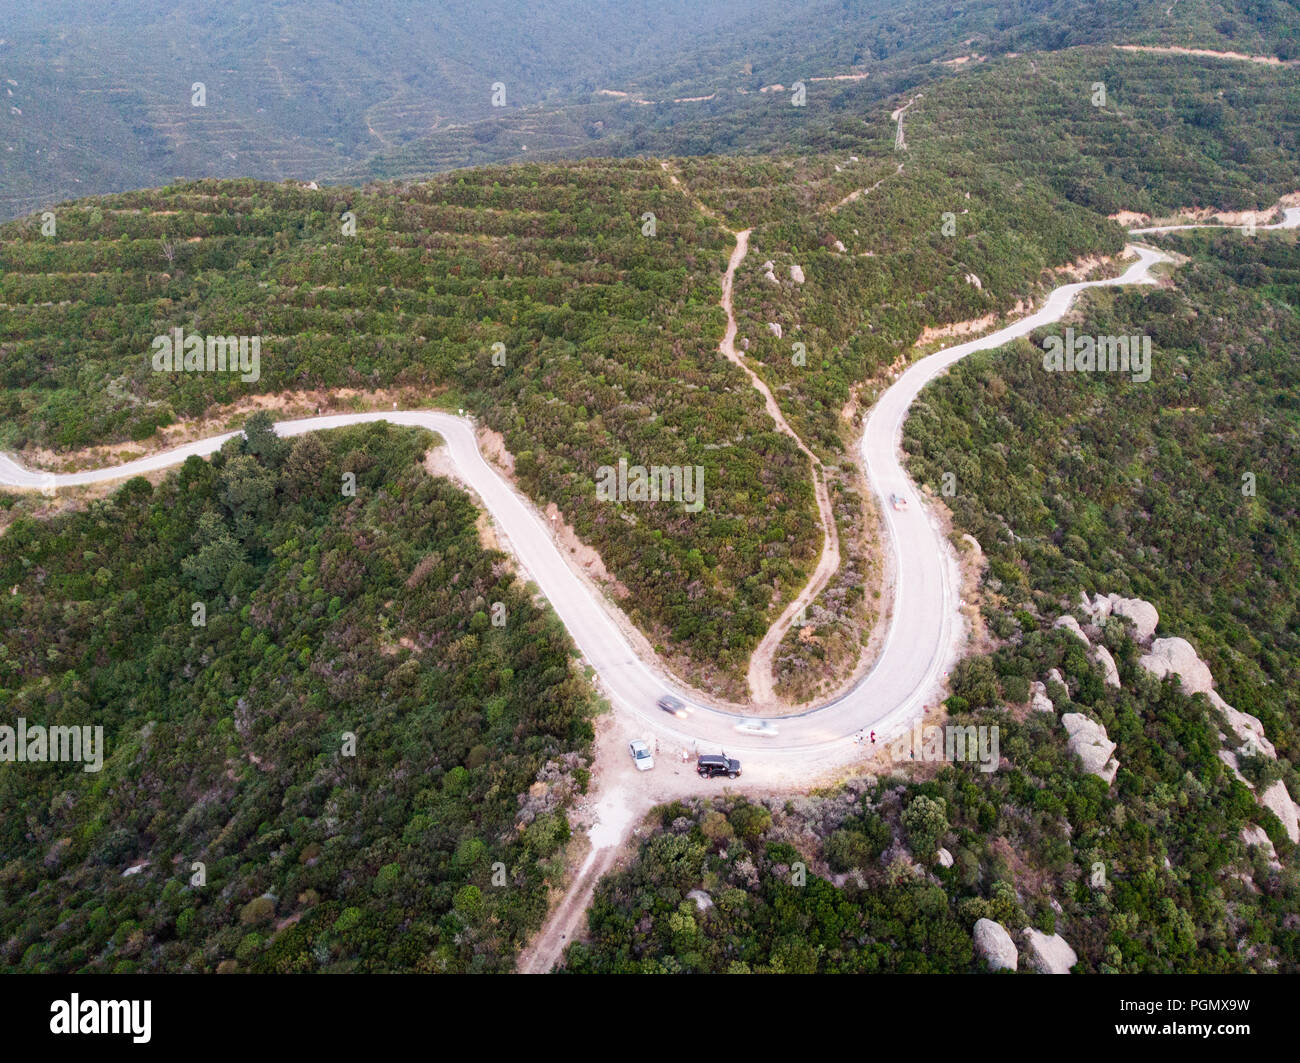 Aerial Drone View of Mountain Way in Forest at Erdek Turankoy / Balikesir Turkey Nature in the City. Stock Photo